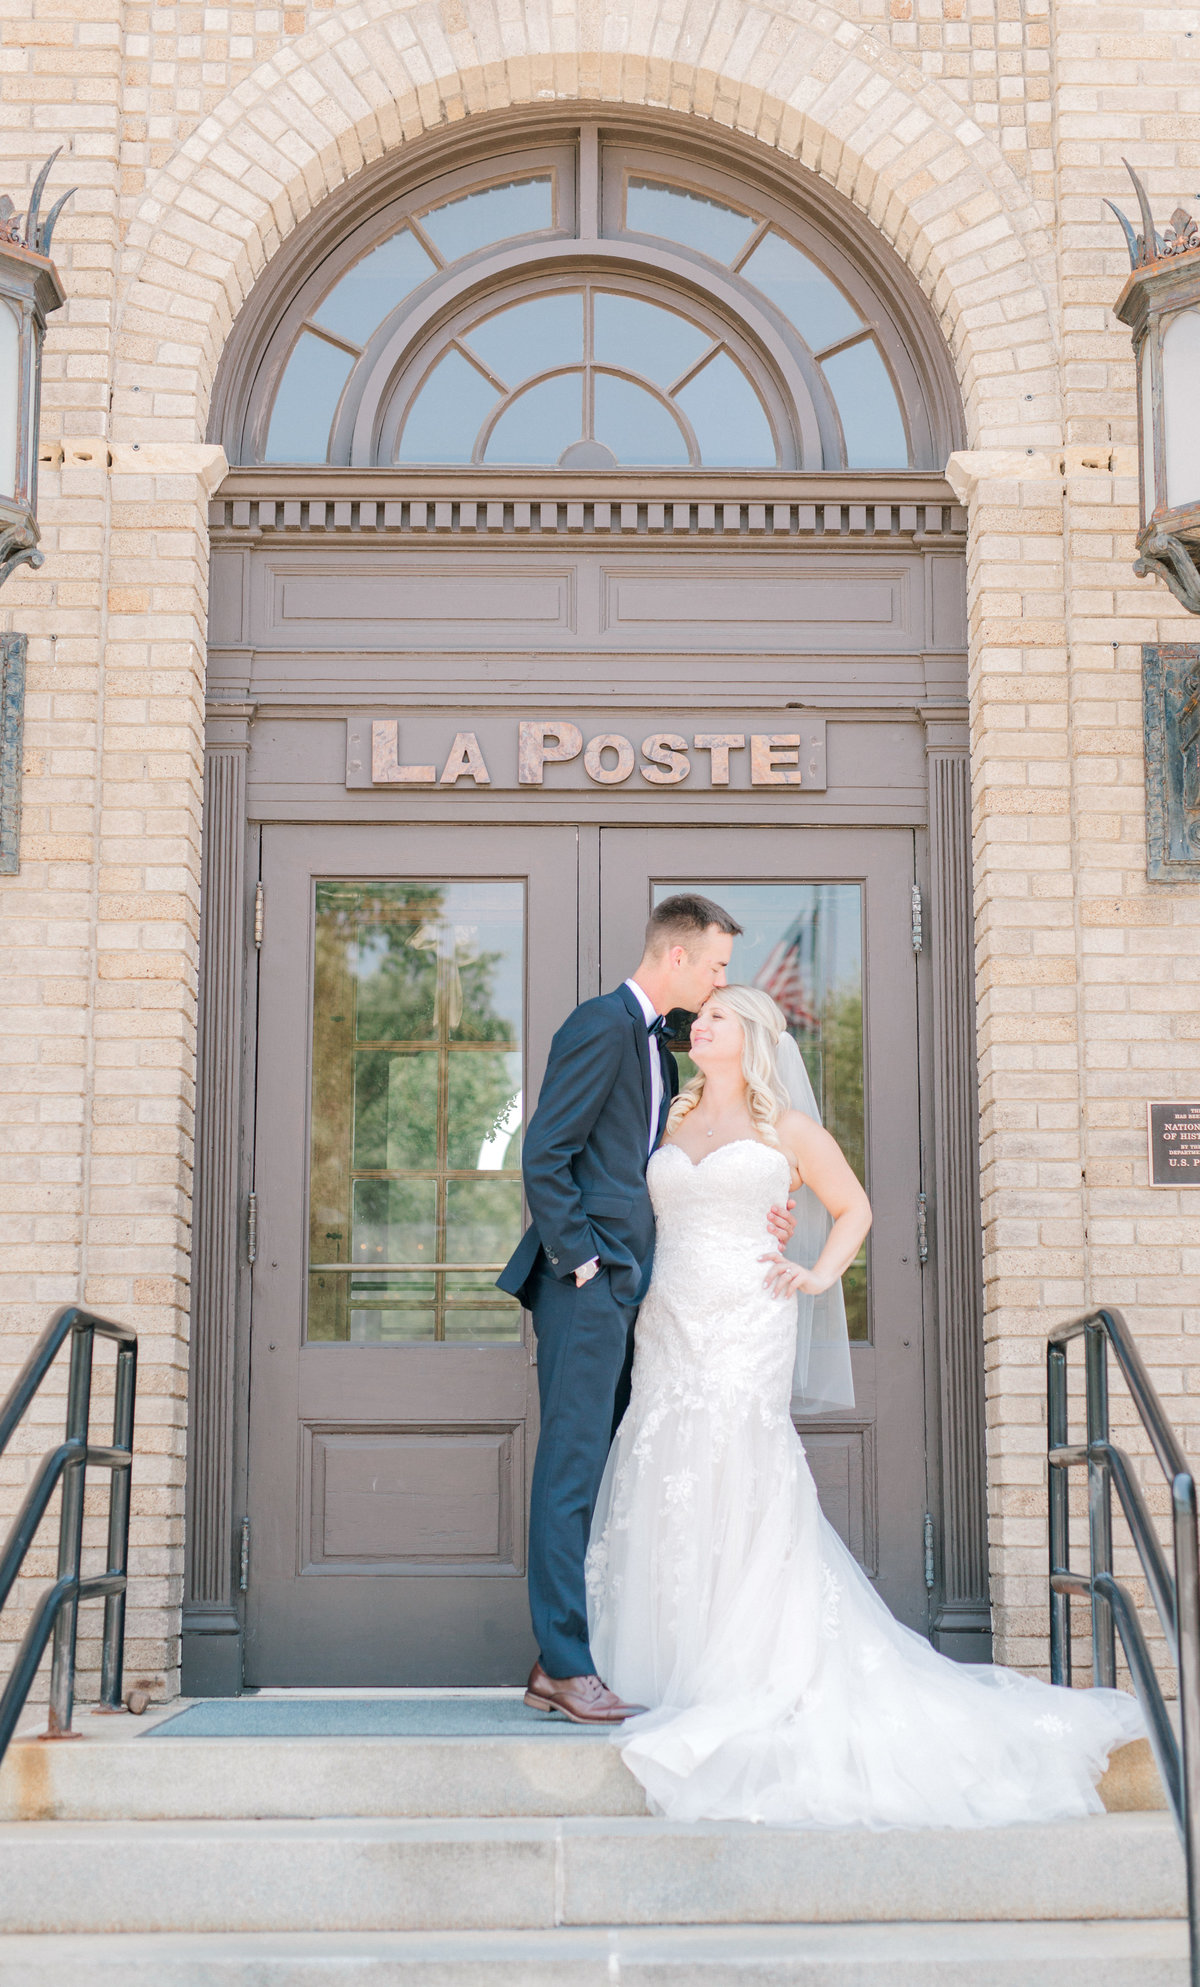 la poste perry iowa wedding photographer danielle+daniel-4888